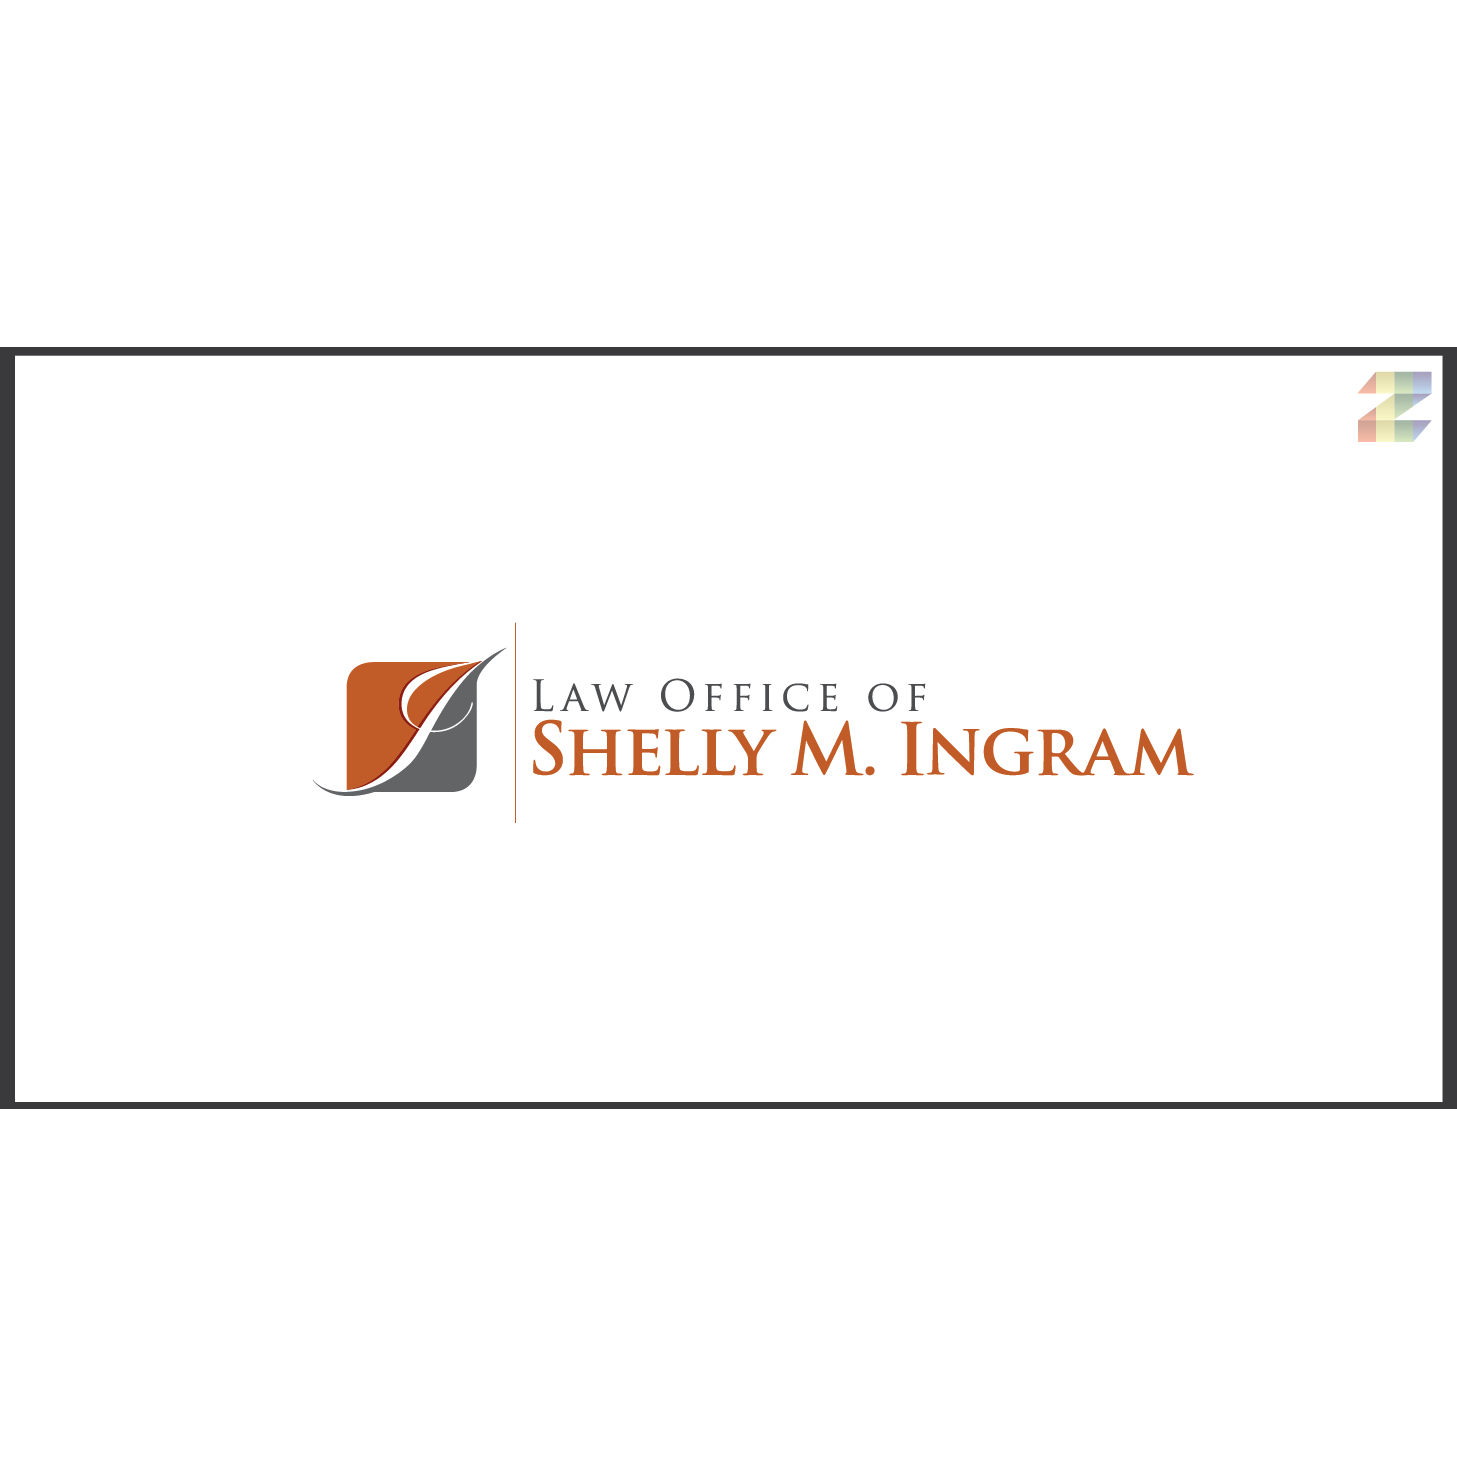 Law Office of Shelly M. Ingram, LLC